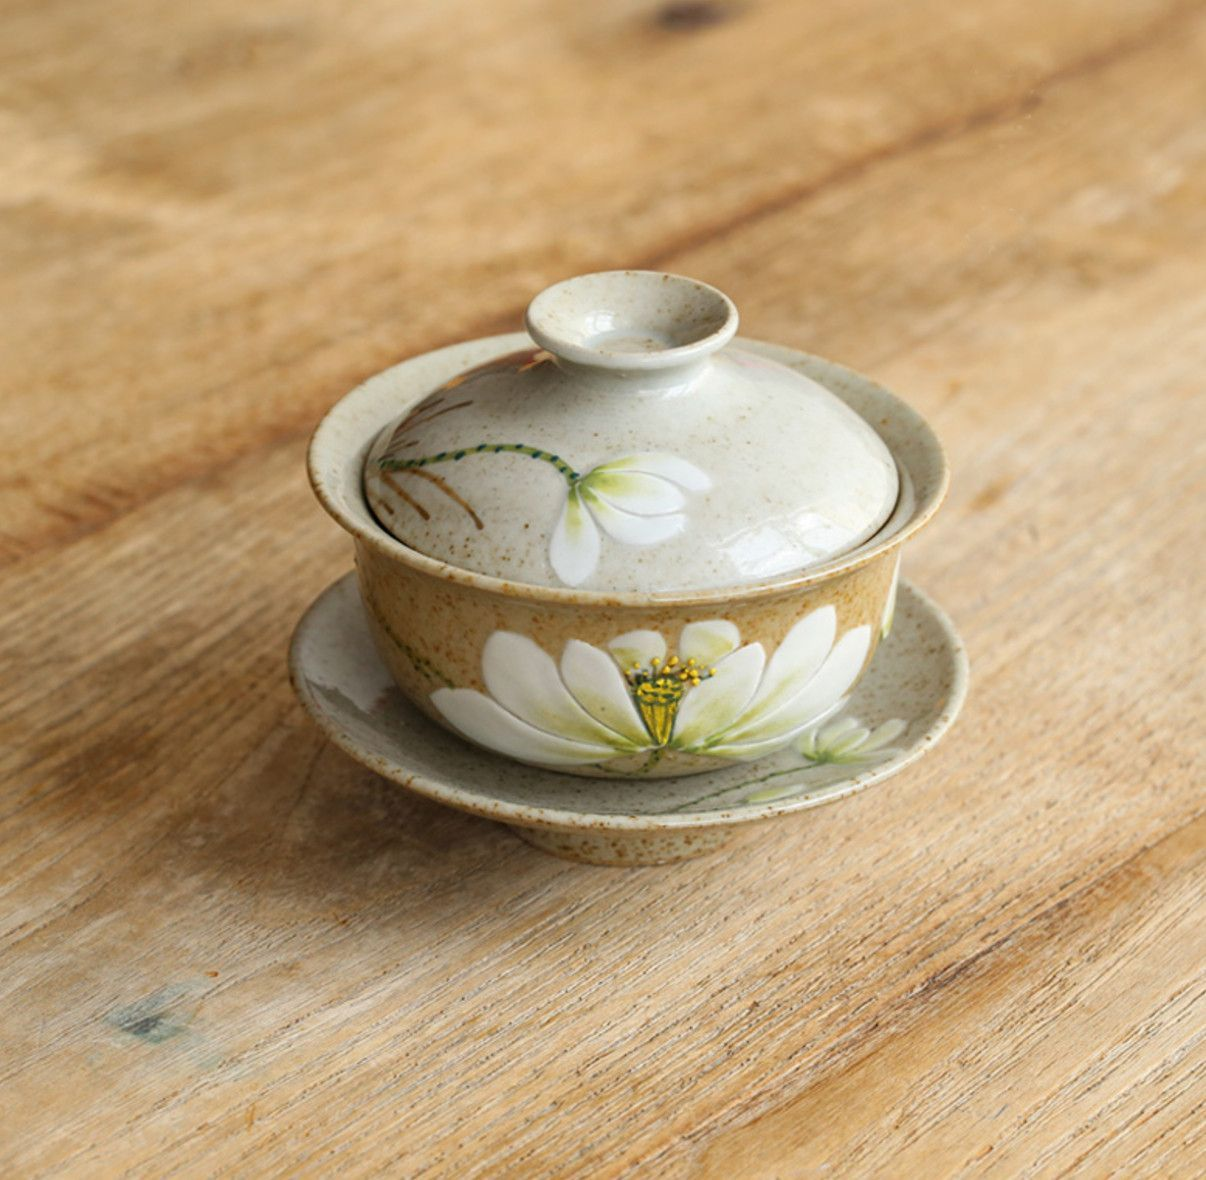 Lotus flower gaiwan crude pottery products pinterest lotus lotus flower gaiwan crude pottery izmirmasajfo